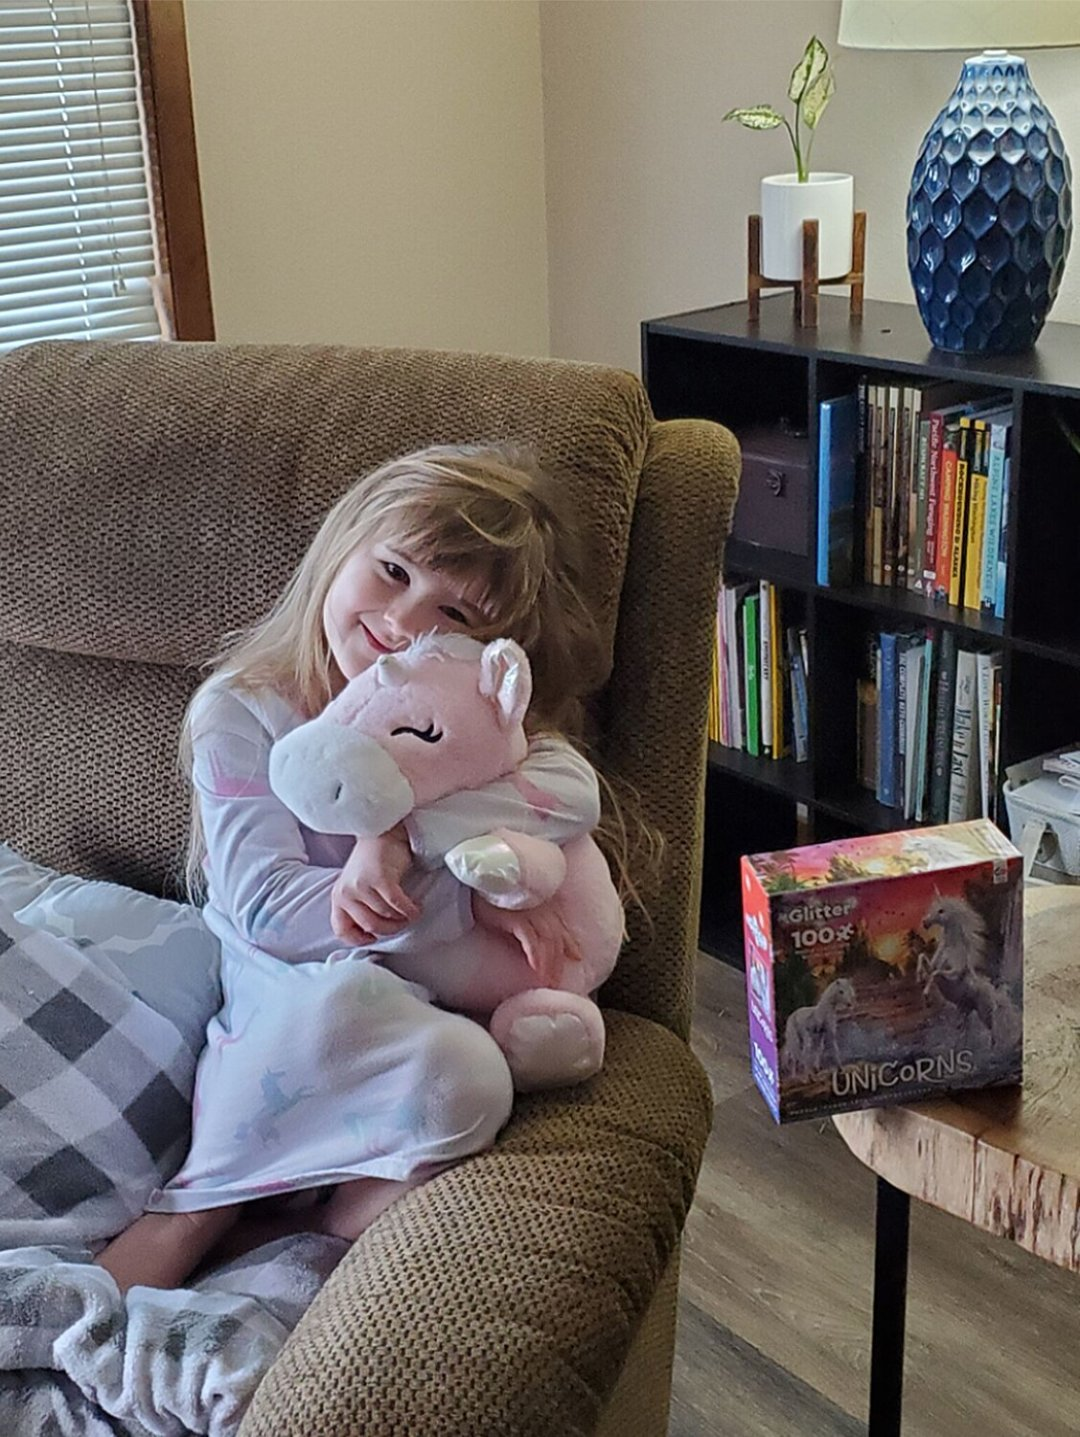 5-Year-Old Girl Asks Mailman for Unicorn and He Delivers   PEOPLE.com